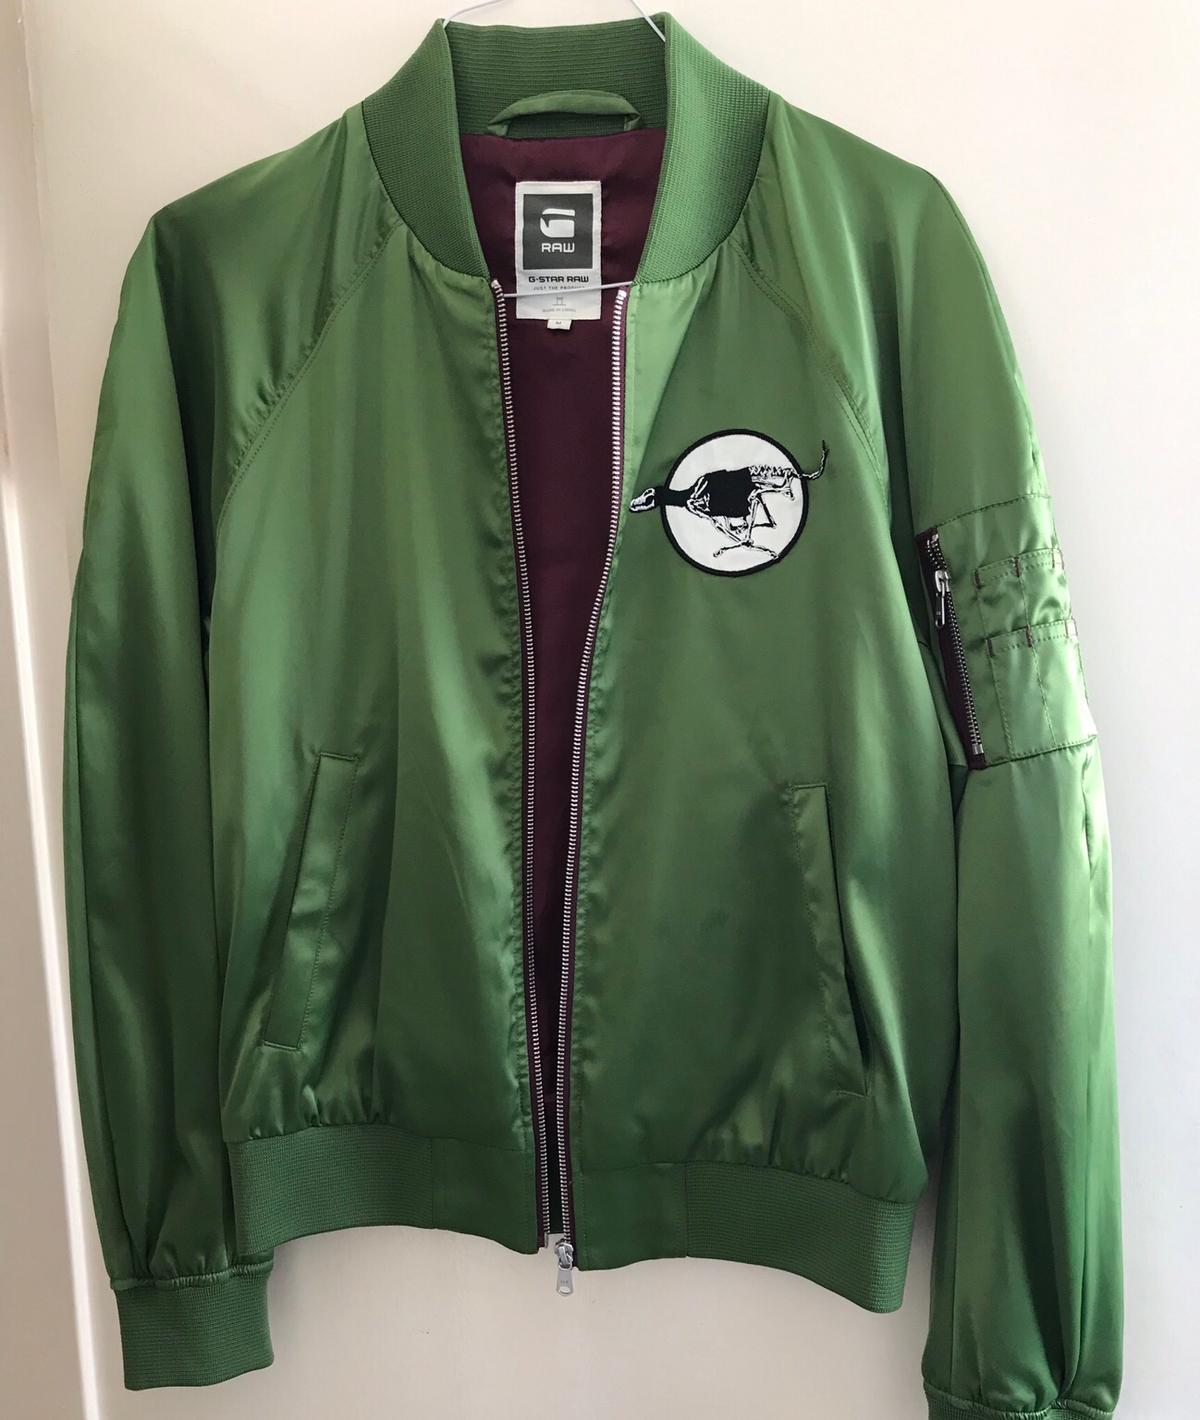 G Star Bomber Jacket Medium Authentic Originally Purchased From West End Flagship Branch for £150